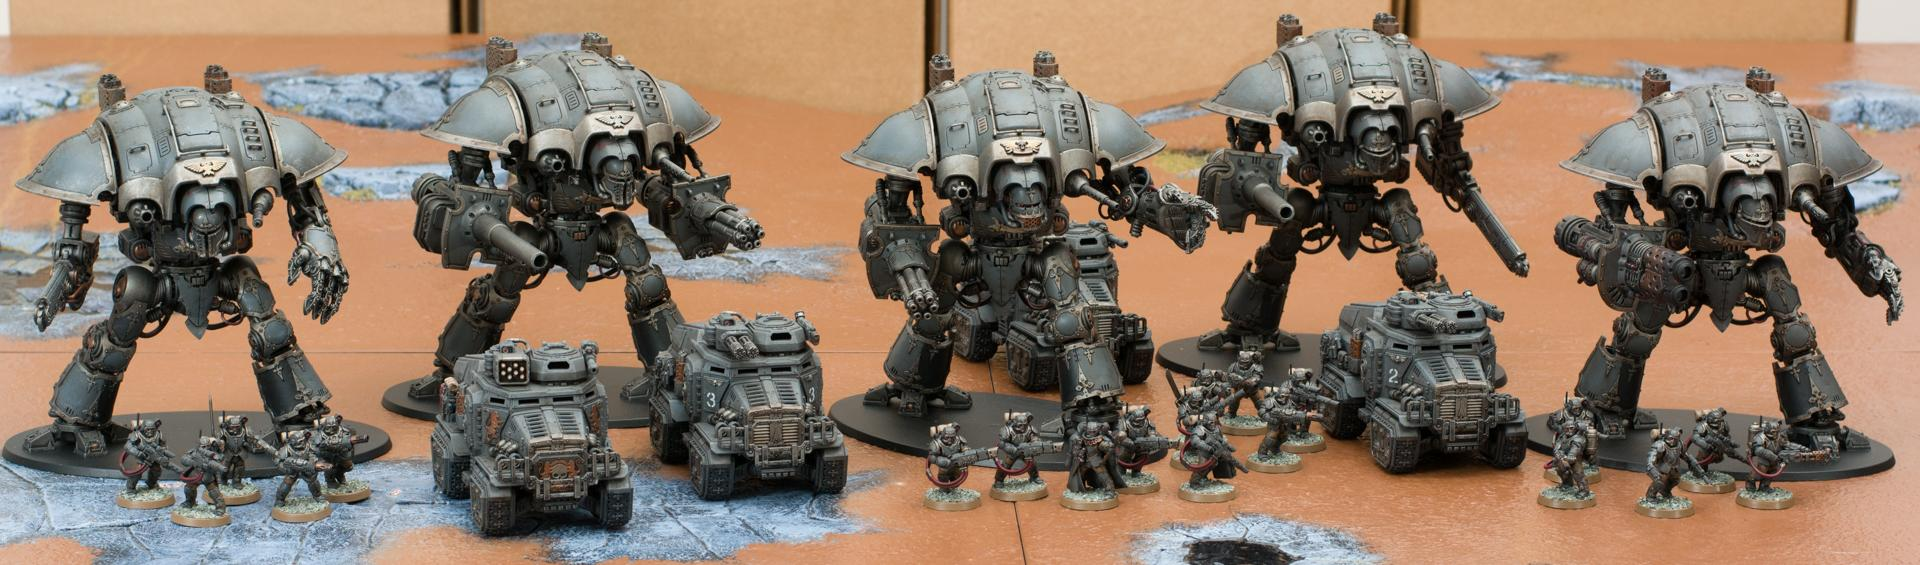 Imperial Guard, Knights, Warhammer 40,000